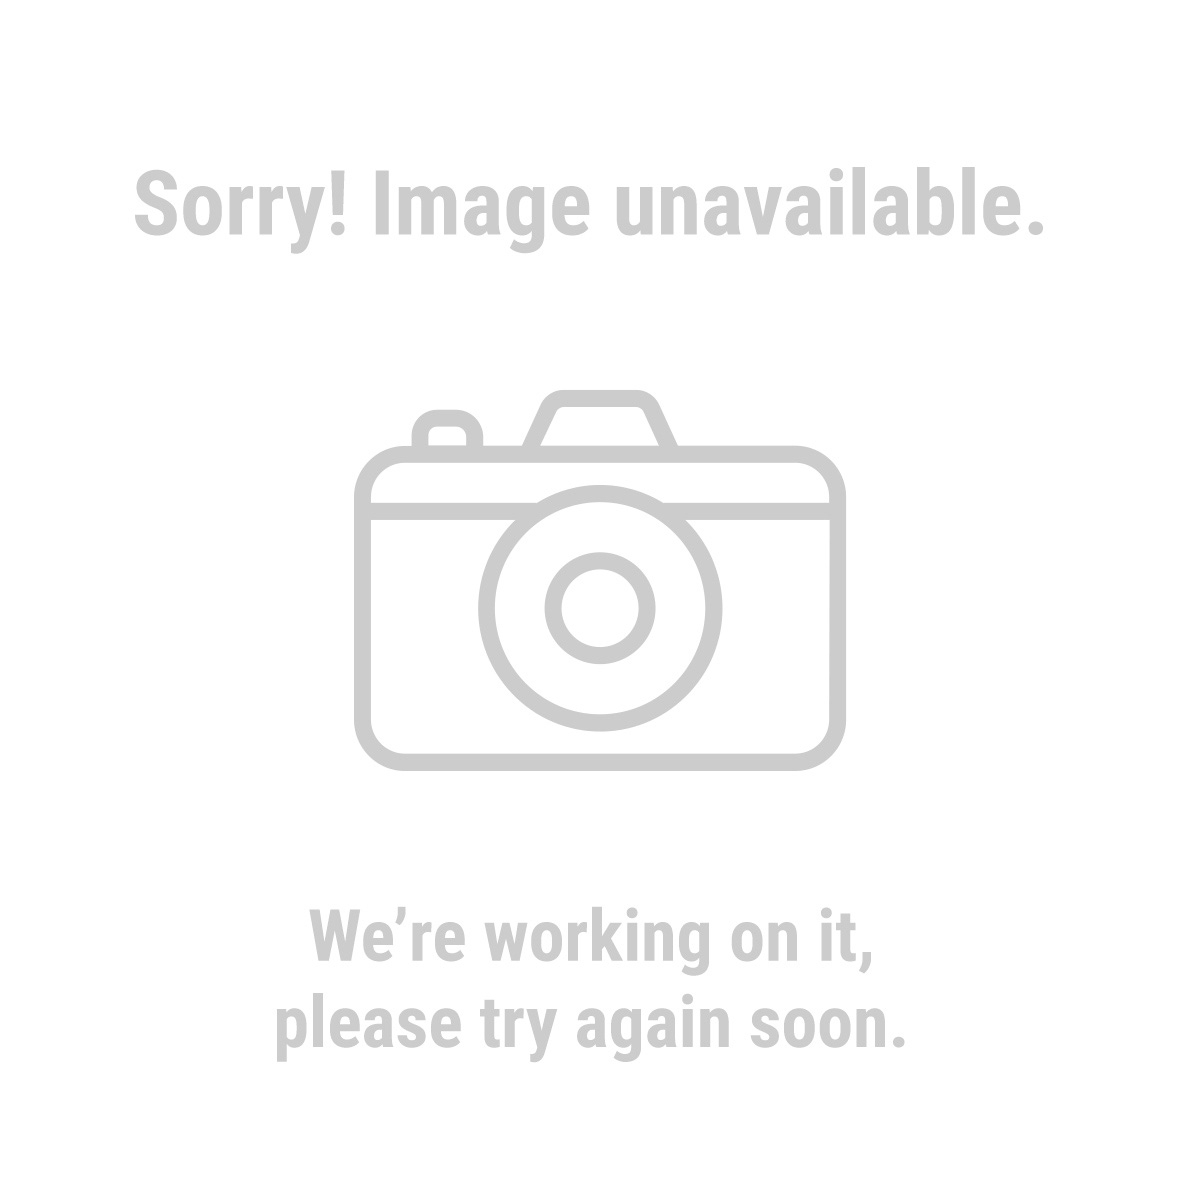 Predator Engines 69675 212cc, 4000 Watts Max/3200 Watts Rated Portable Generator - Certified for California